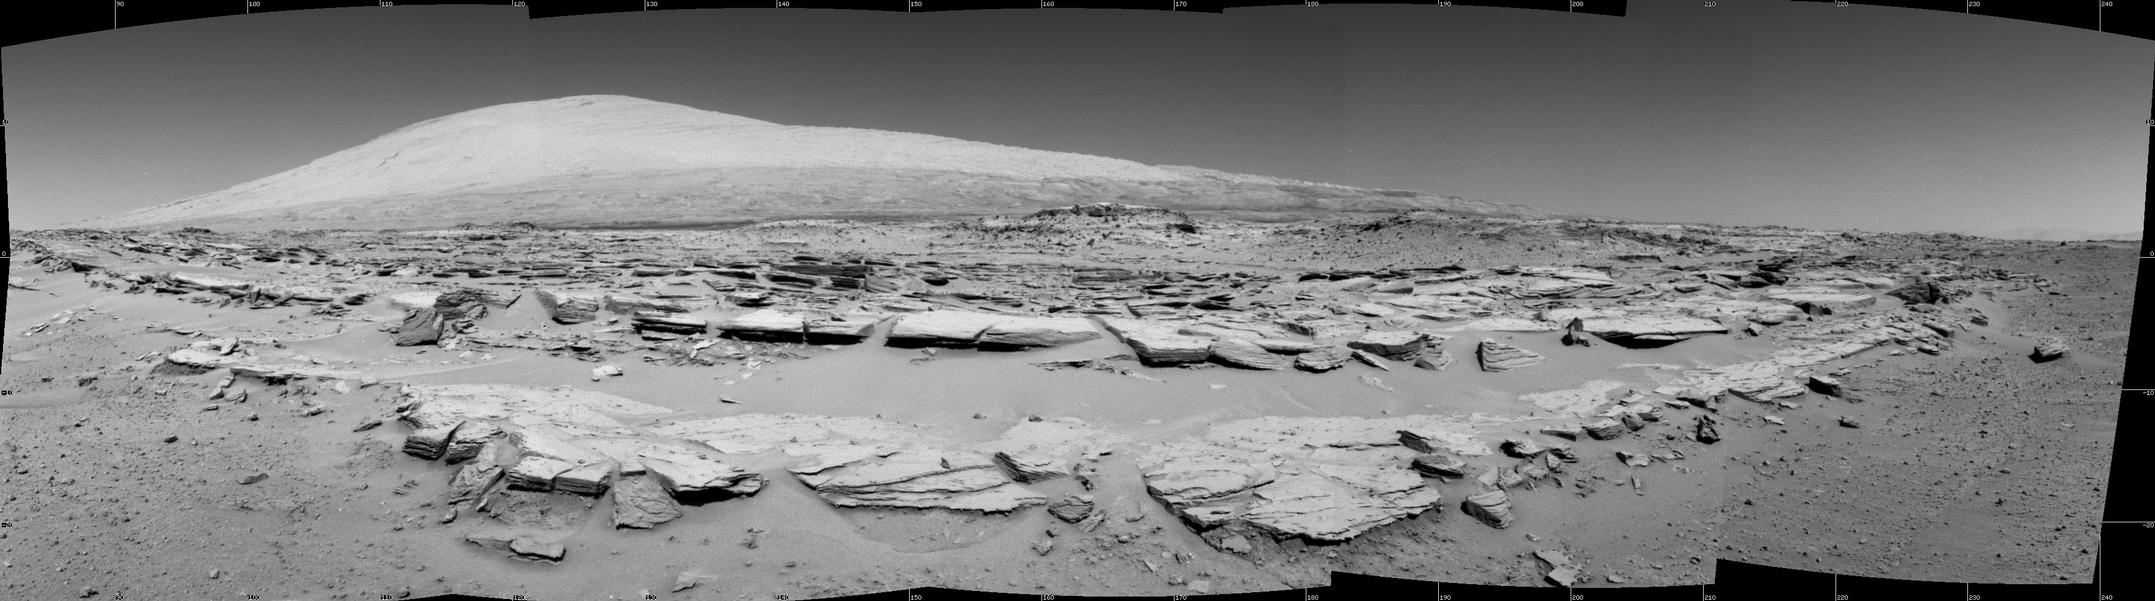 Image of Martian Landscape With Rock Rows and Mount Sharp